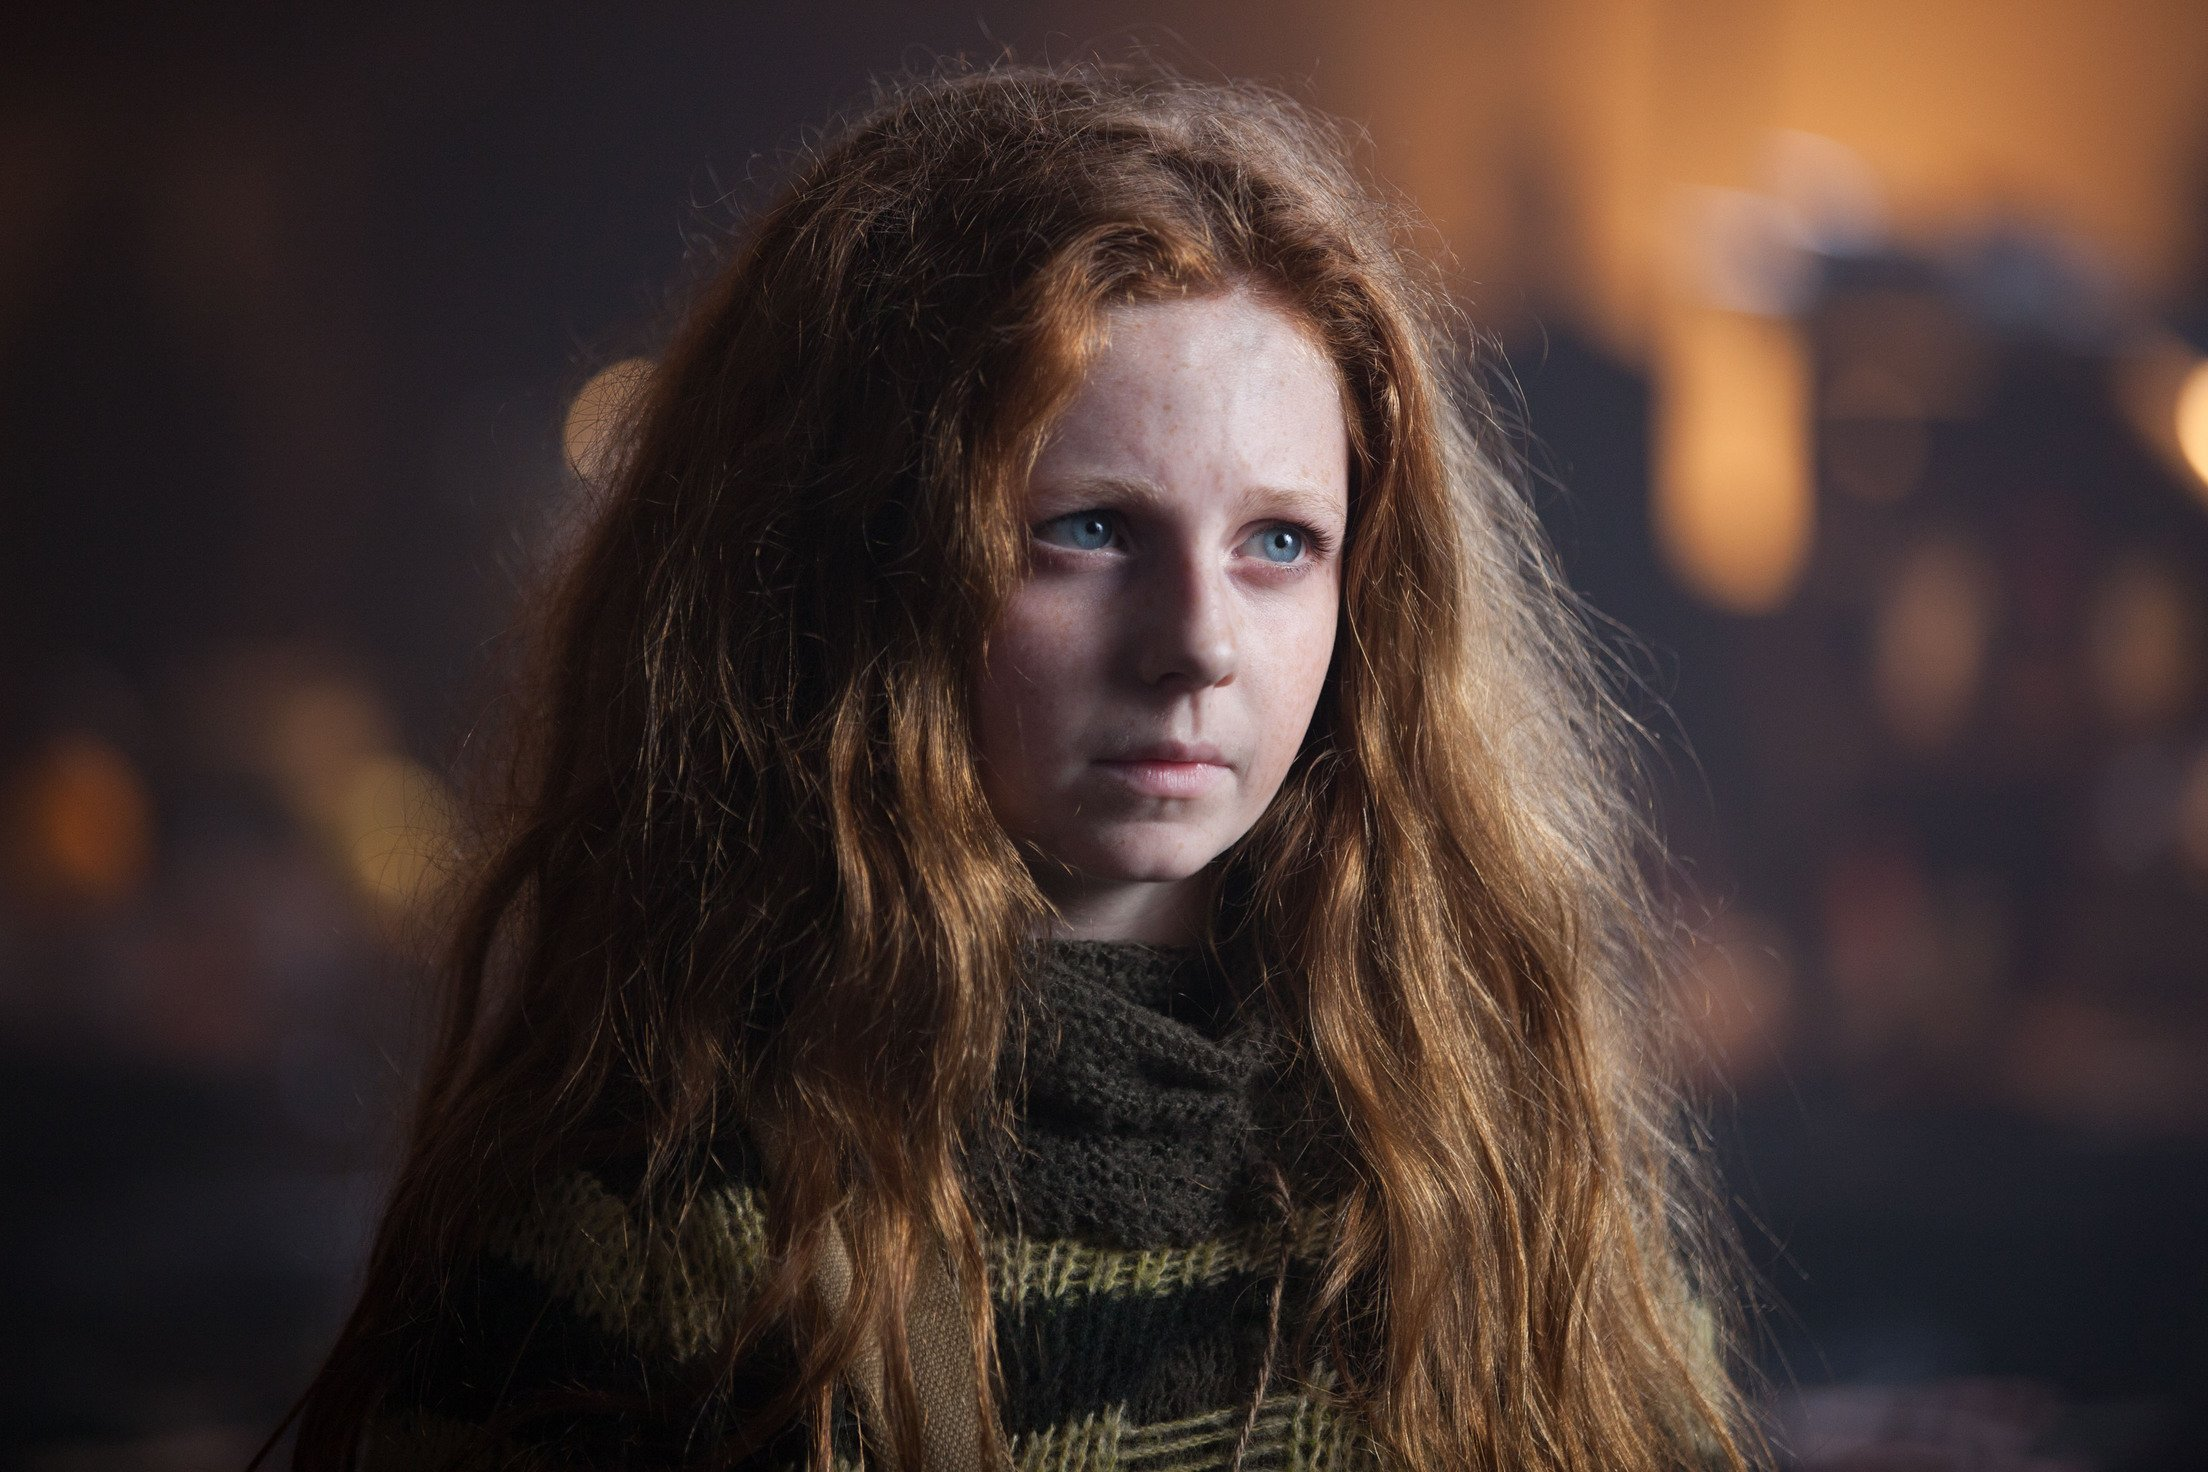 """GOTHAM: Clare Foley as Ivy Pepper in the """"Lovecraft"""" episode of GOTHAM airing Monday, Nov. 24 (8:00-9:00 PM ET/PT) on FOX. ©2014 Fox Broadcasting Co. Cr: Jessica Miglio/FOX"""